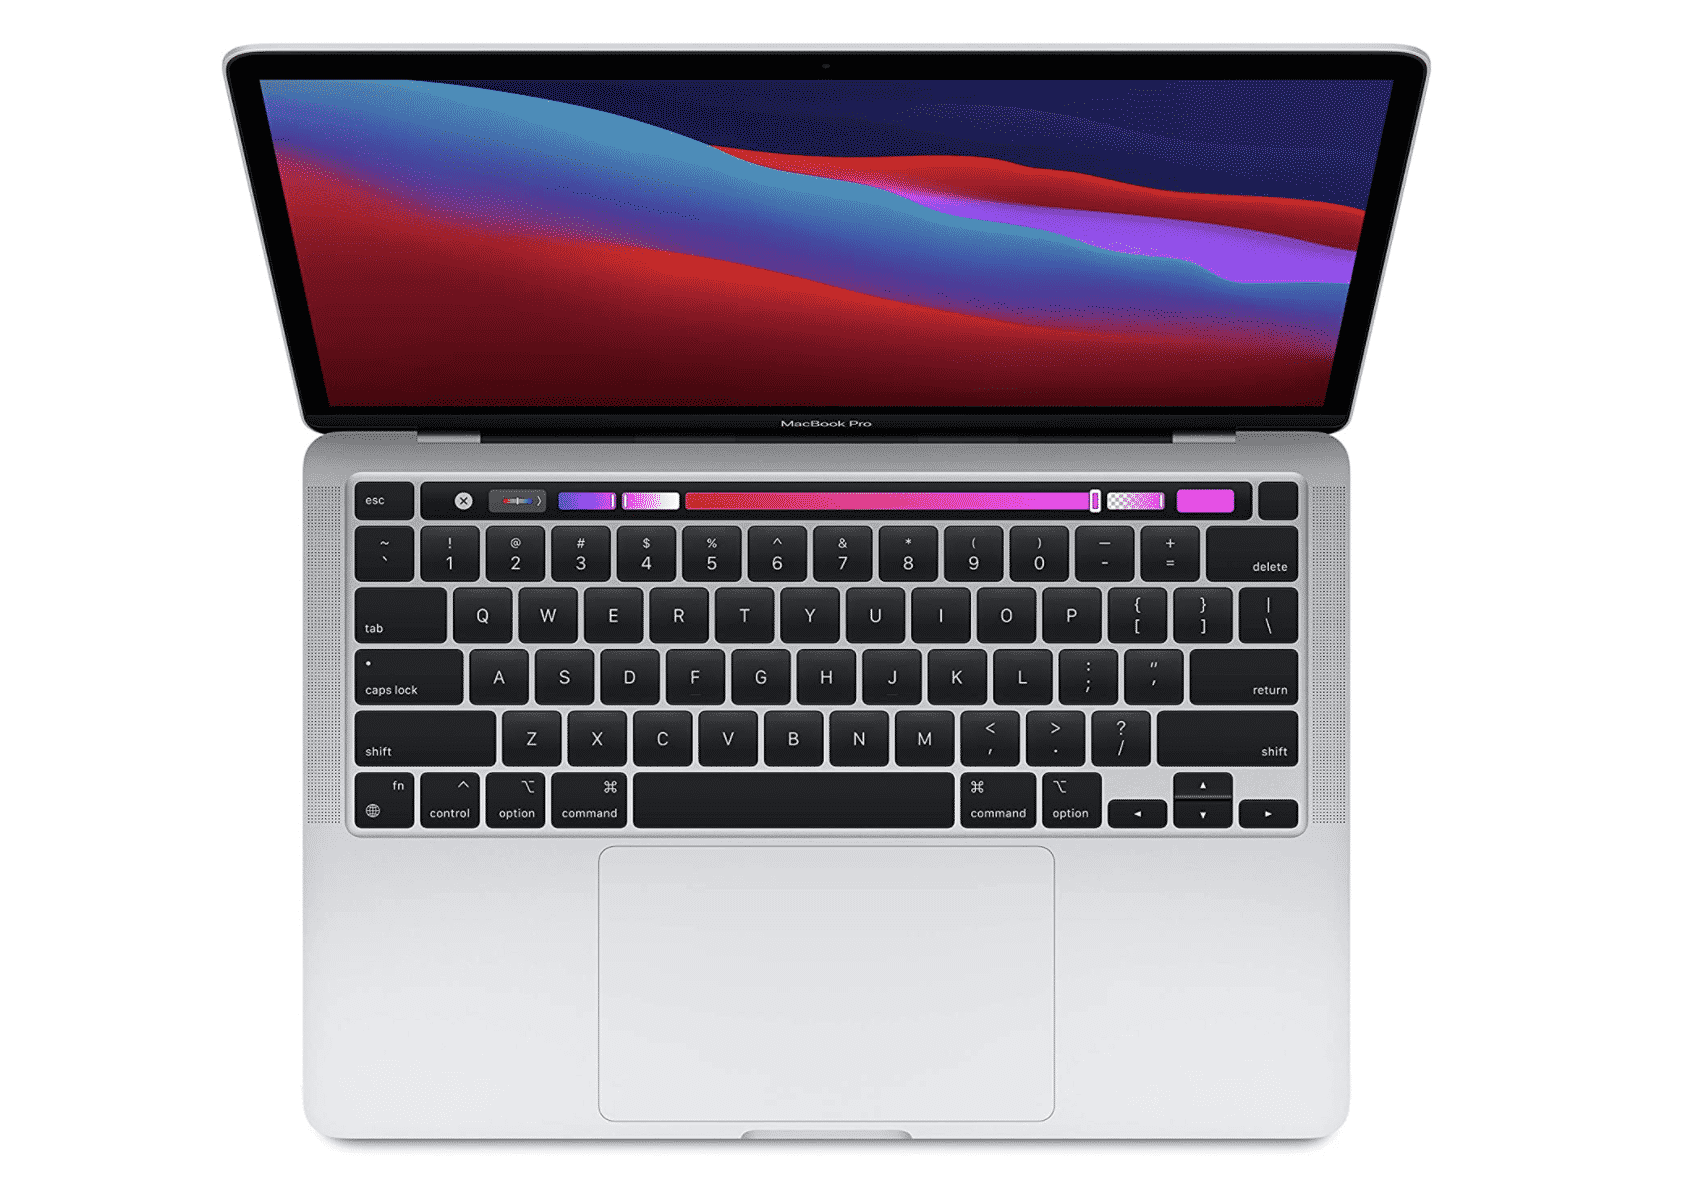 Save $100 on the 8GB 256GB/512GB MacBook Pro with New M1 Chip